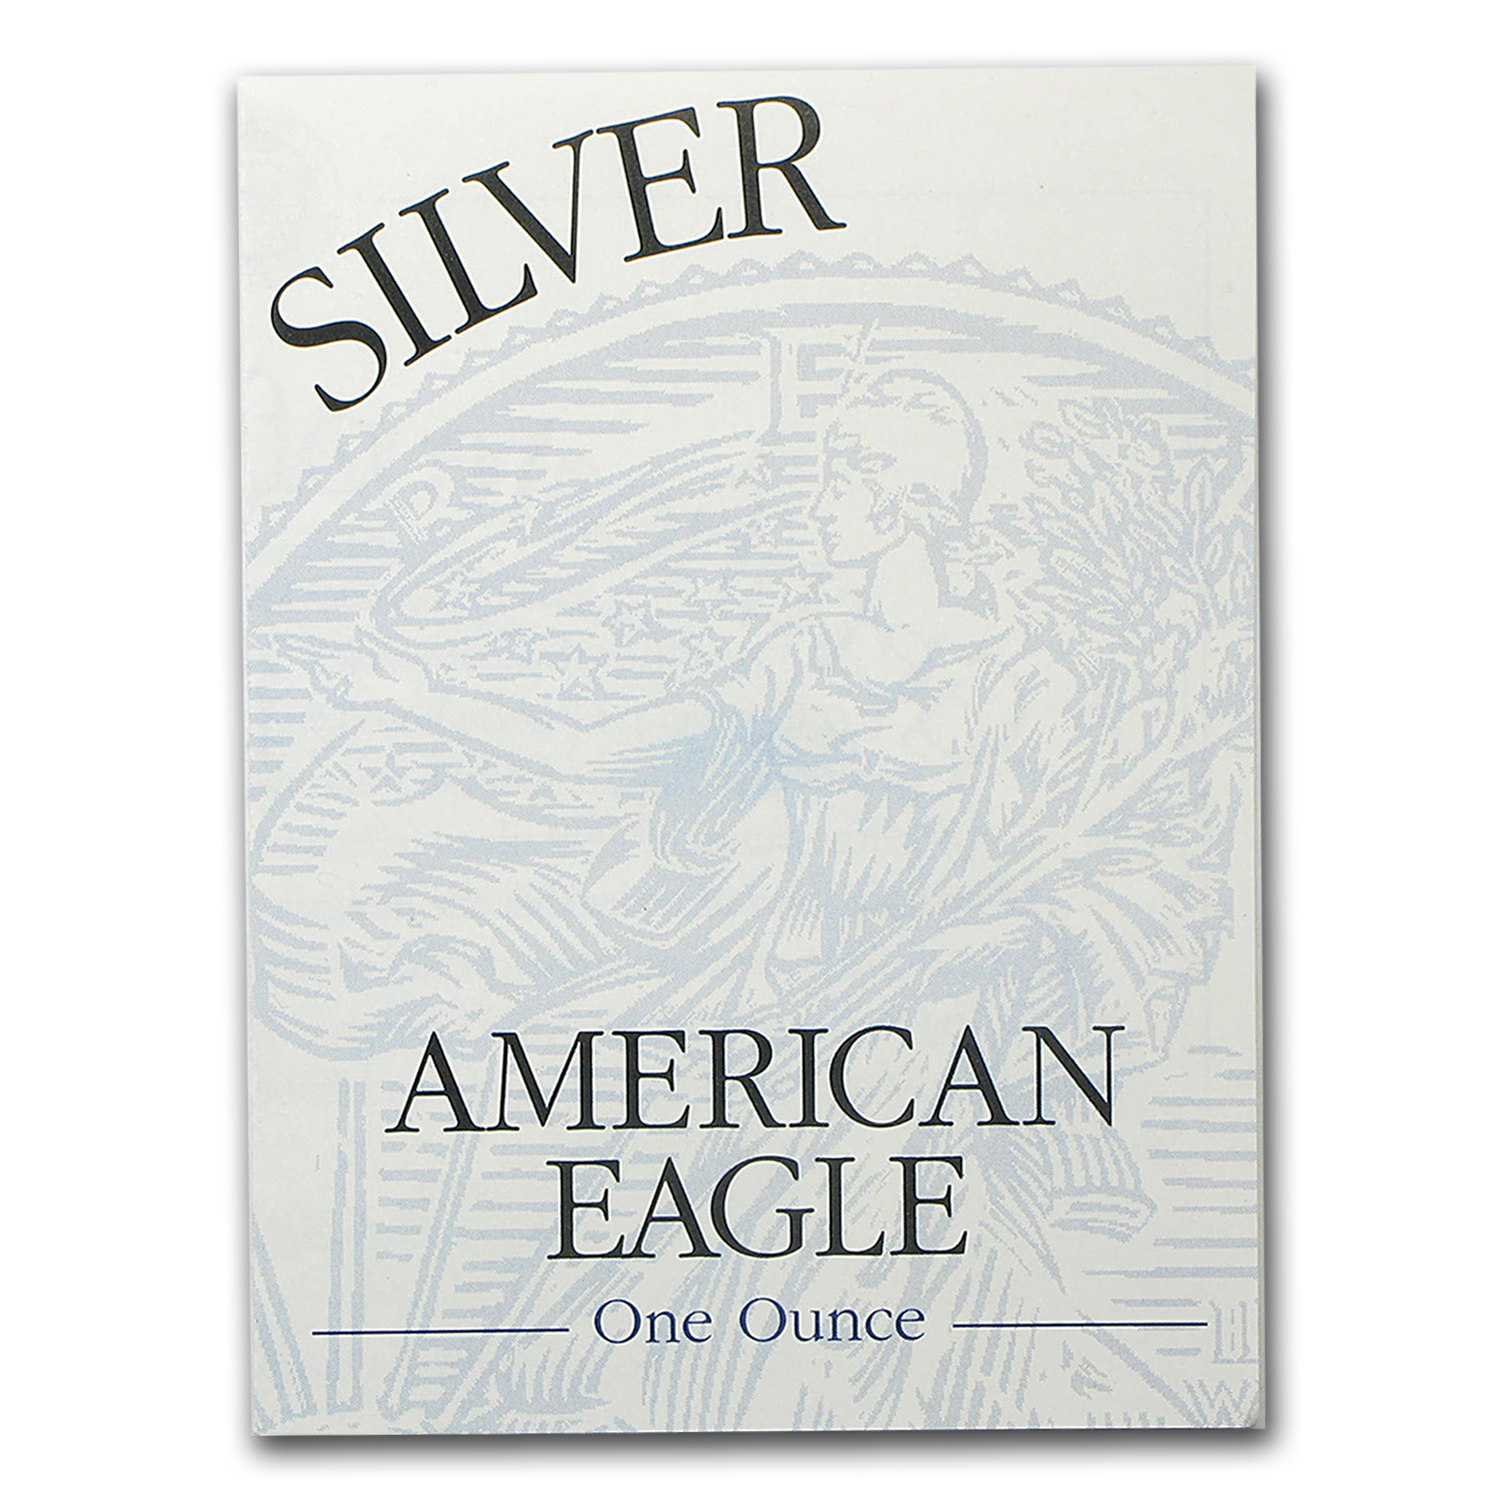 COA - 1996 US Mint 1 oz Silver American Eagle (Proof)